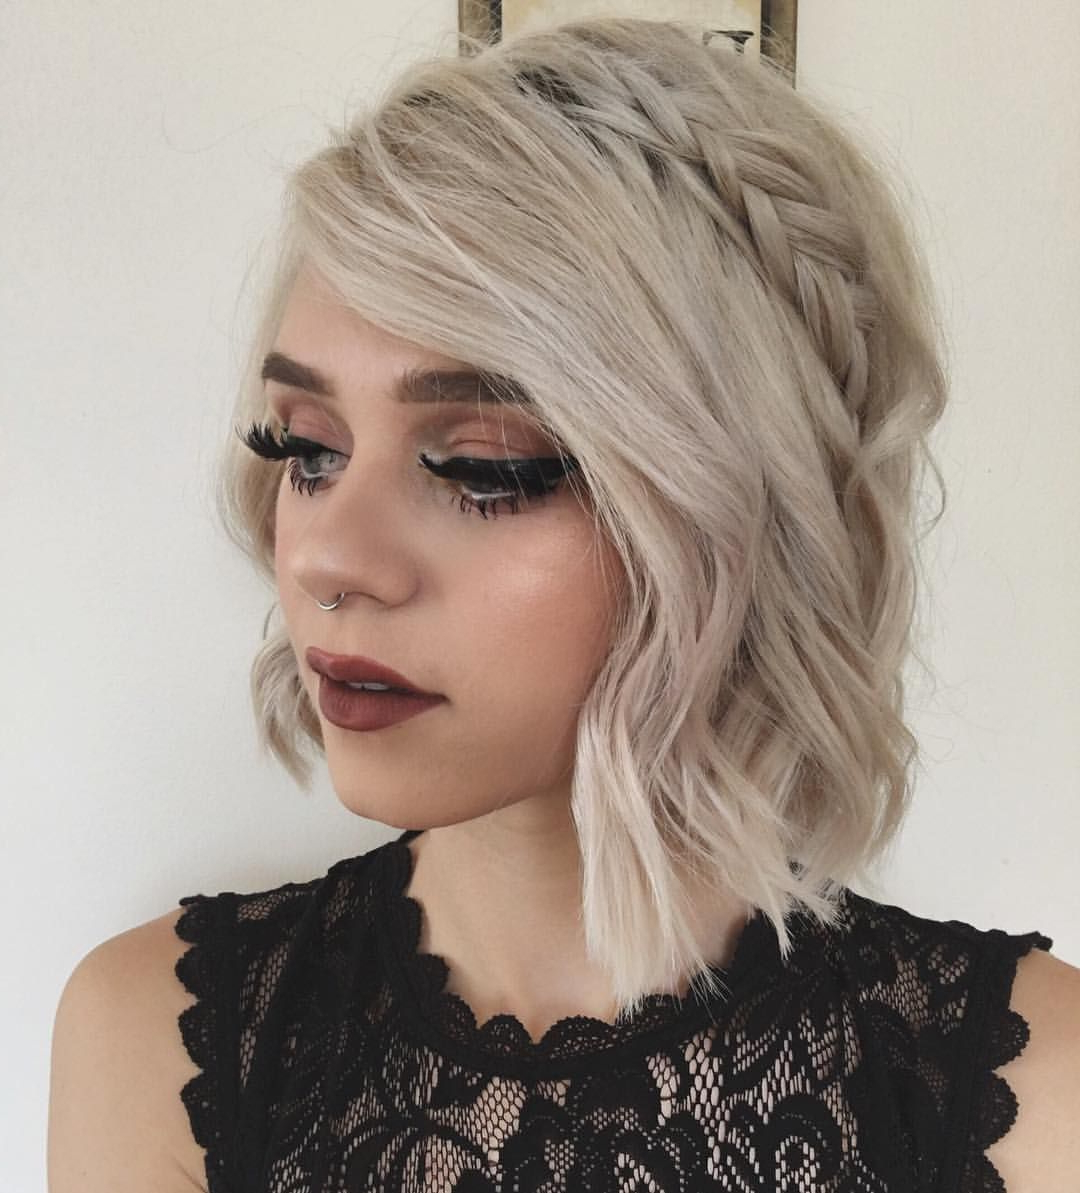 Pinlily Ritter On Beauty In 2018 | Pinterest | Hair, Short Hair Within Hairstyles For Short Hair For Graduation (View 22 of 25)